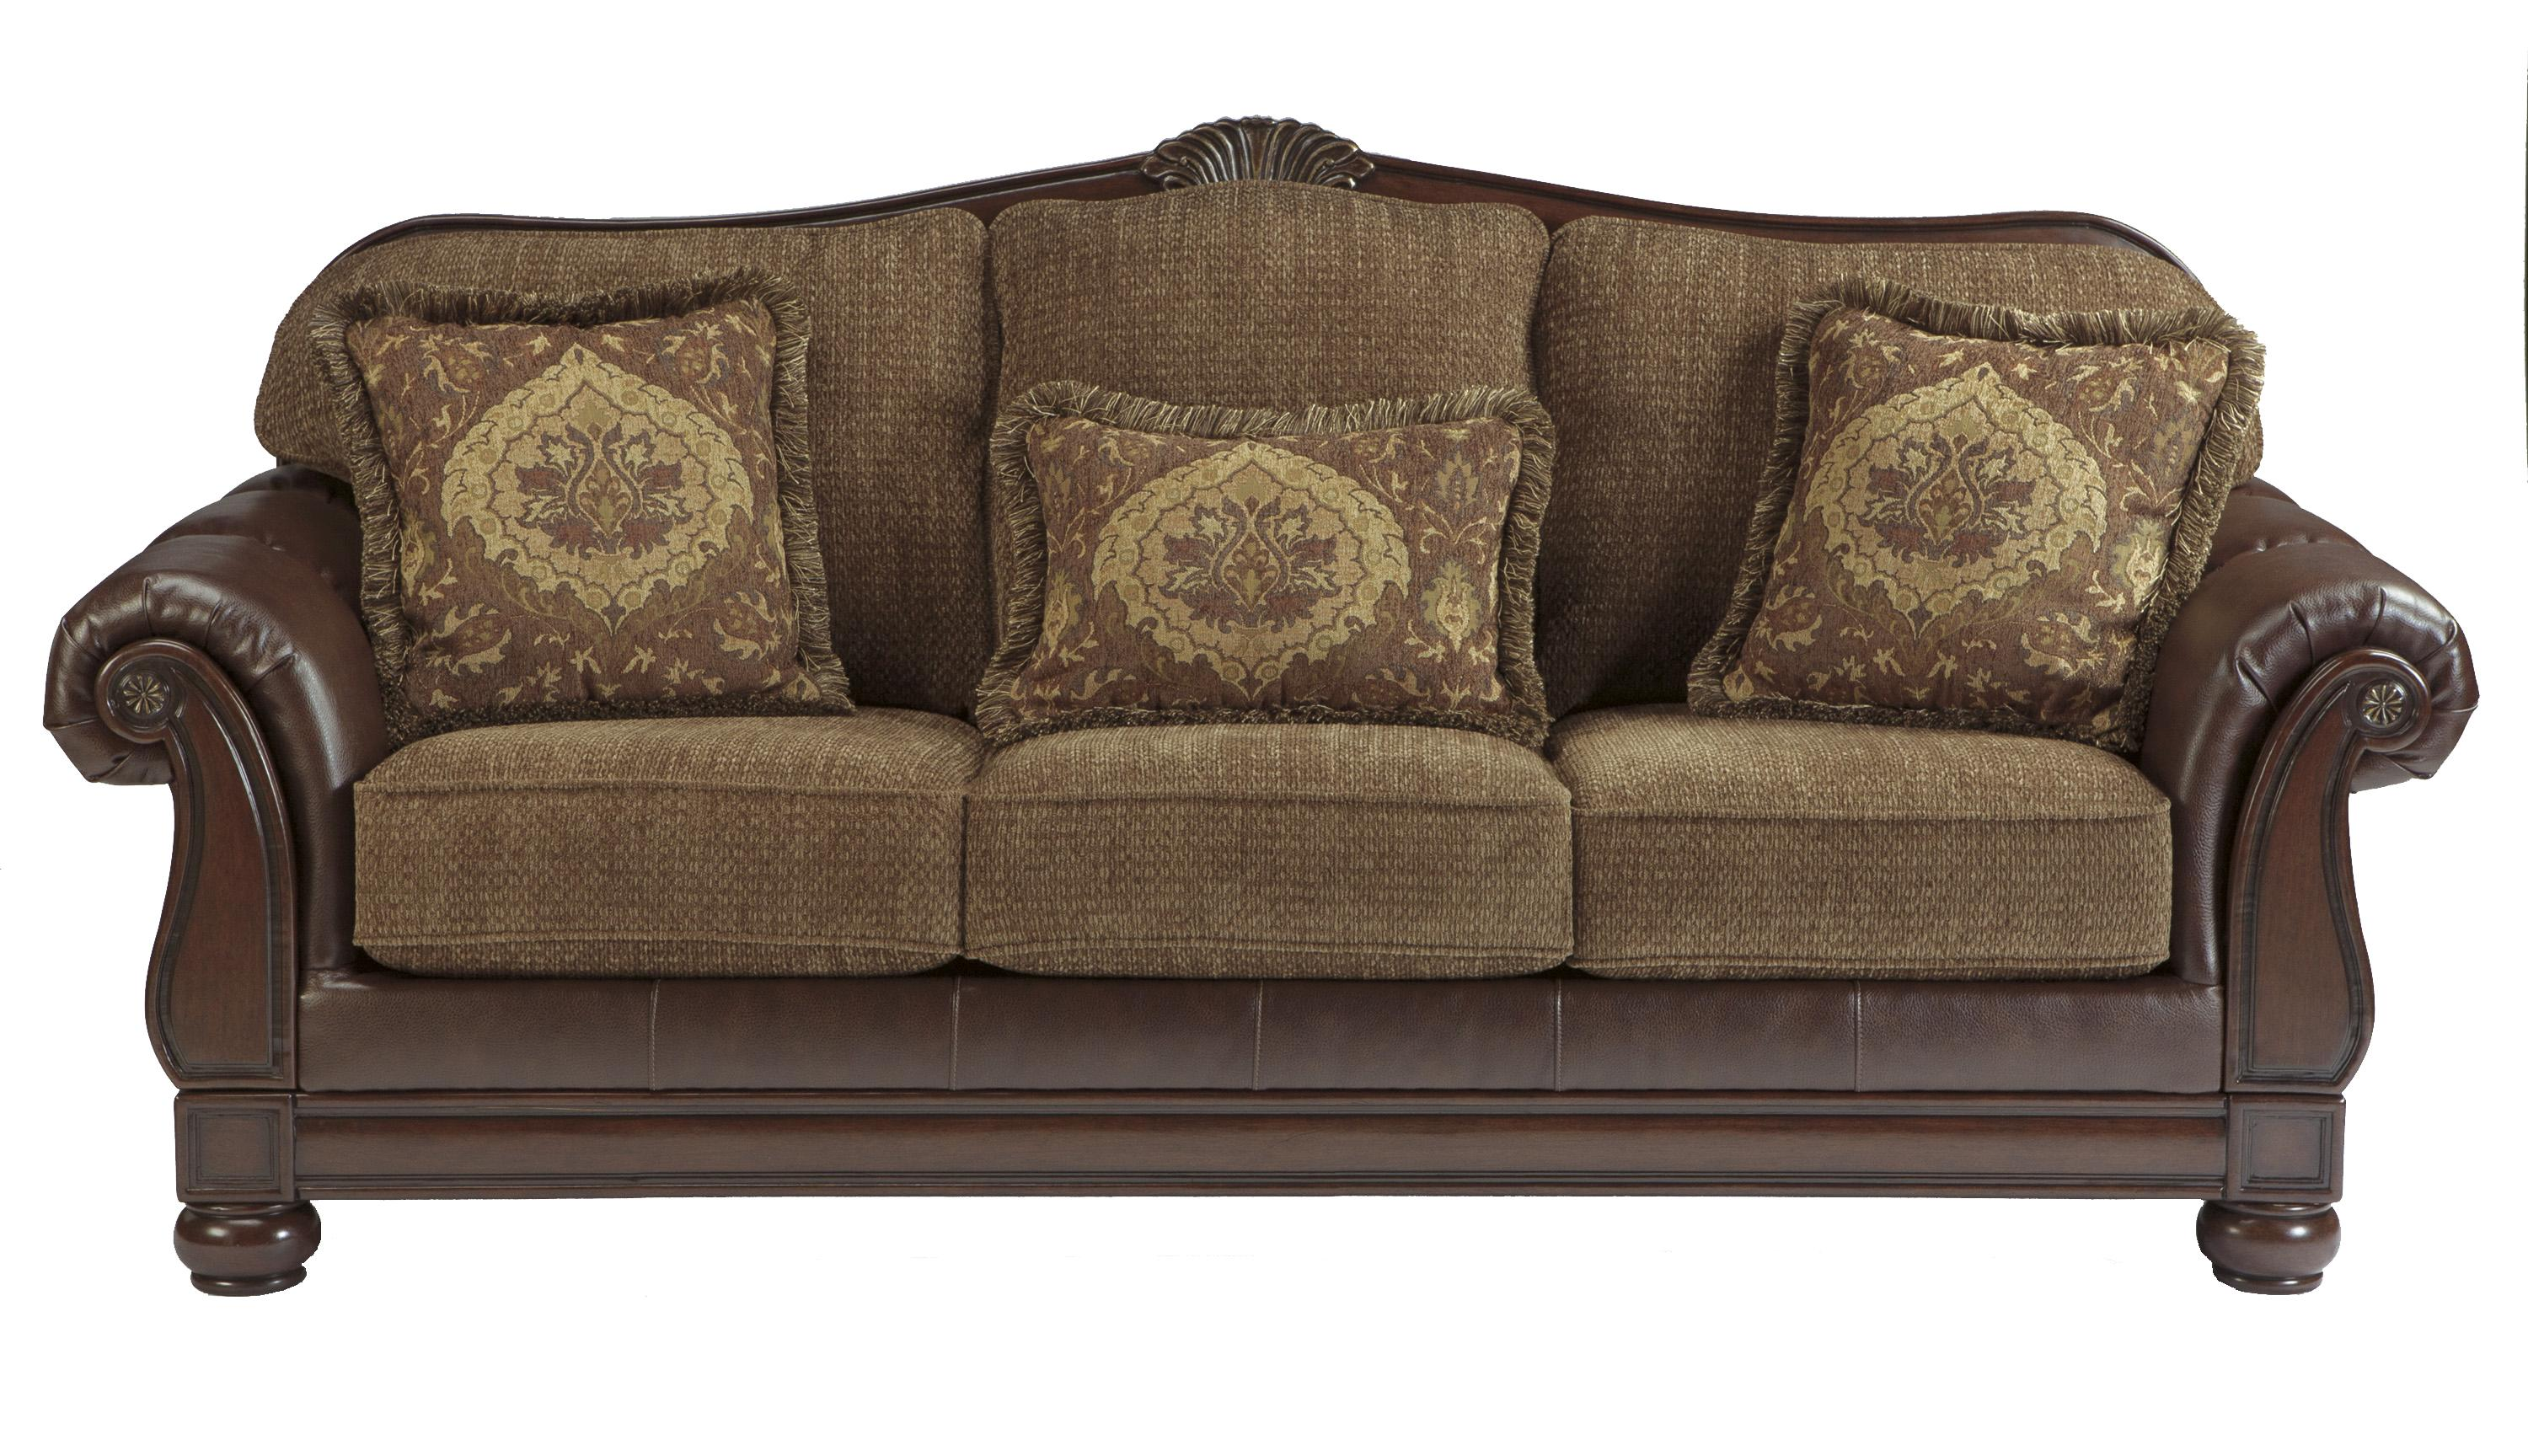 Signature Design By Ashley Beamerton Heights Chestnut Tradtional Roll Arm Sofa Ahfa Dealer Locator